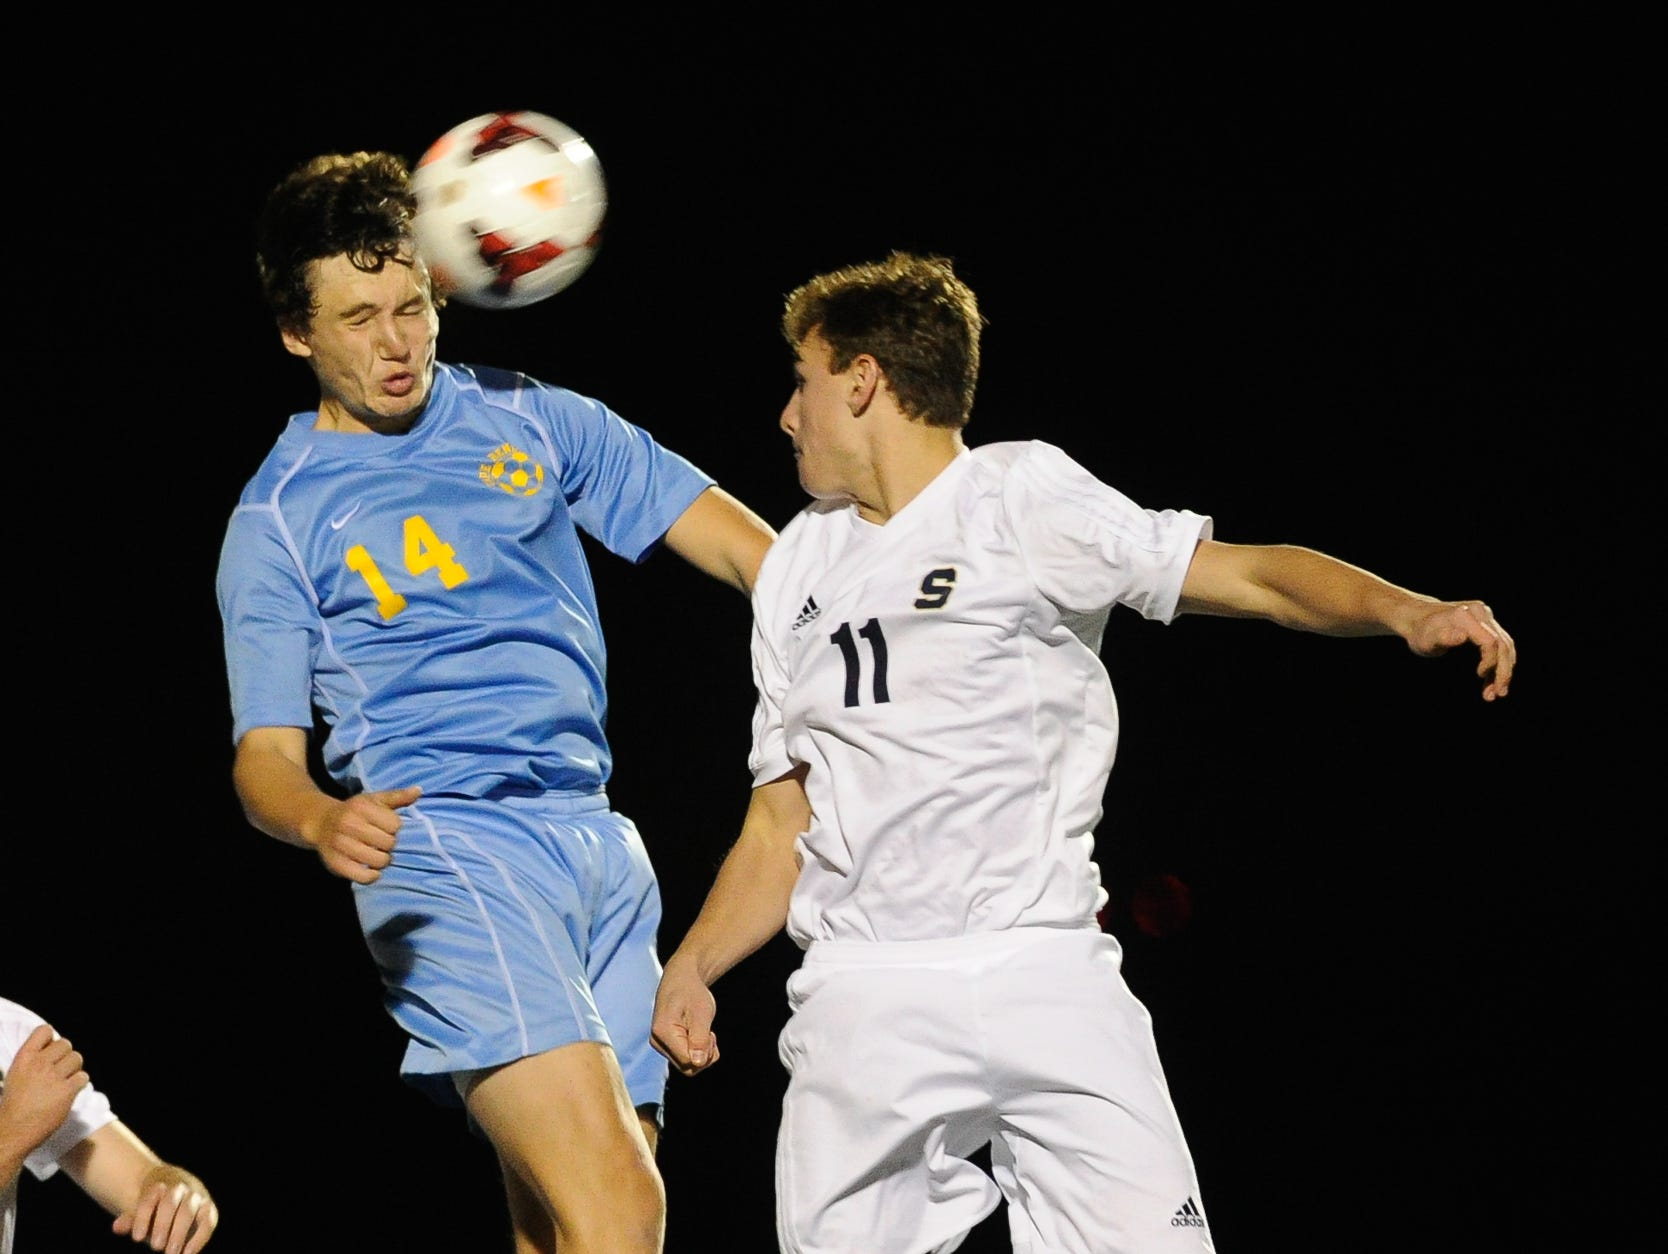 Cape Henlopen's #14 Zachary Gelof heads the ball over Salesianum's #11 Trevor Clare in the second half of the DIAA Division I soccer semifinal game at Smyrna High School.